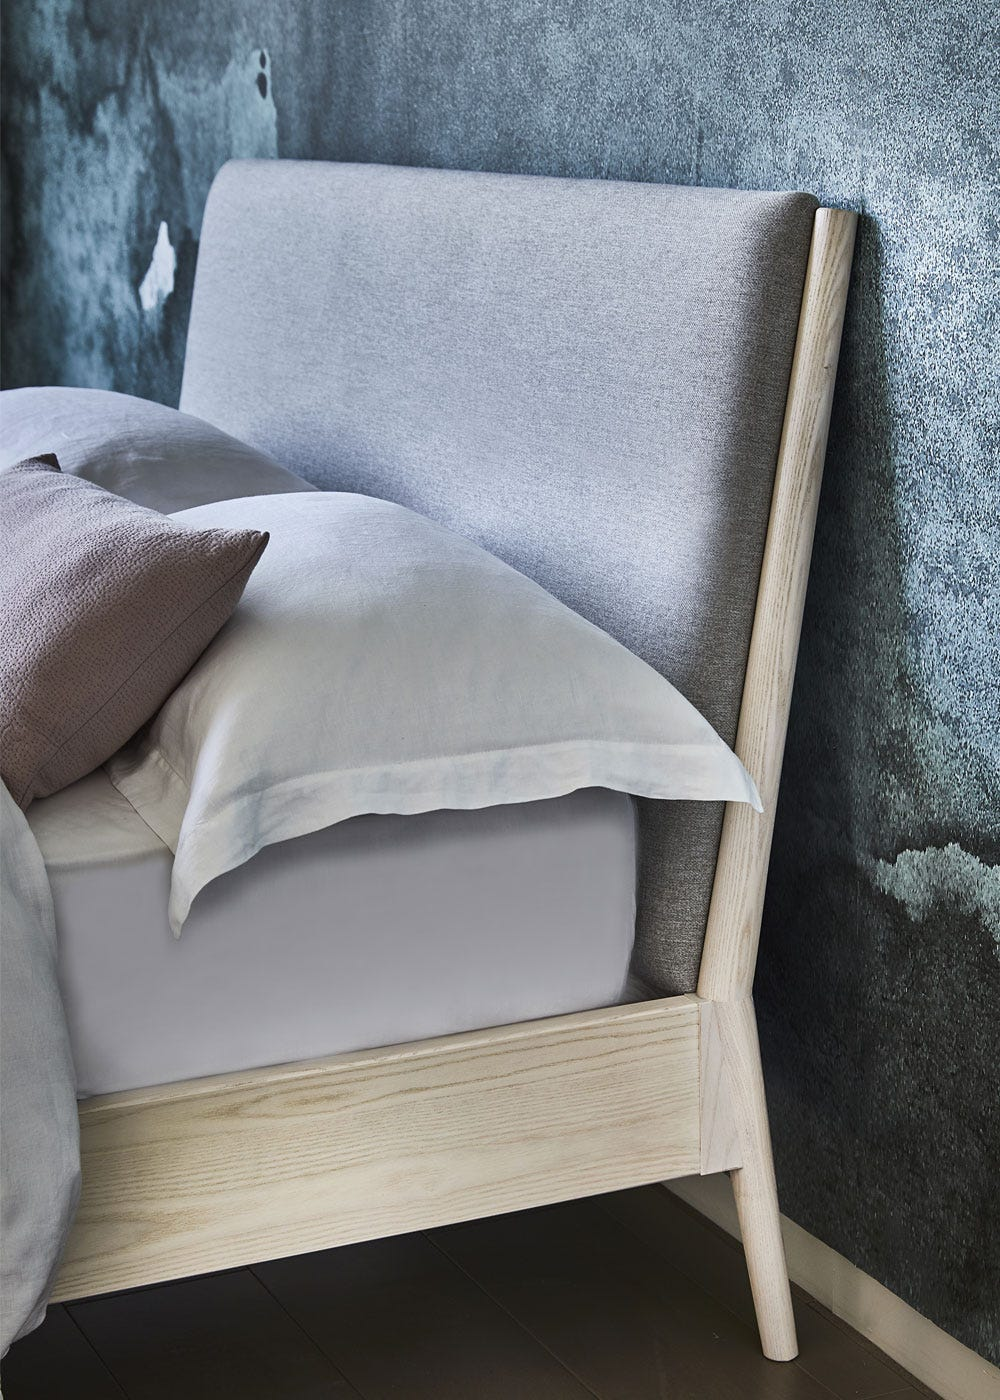 The salina bed comes with an upholstered headboard.